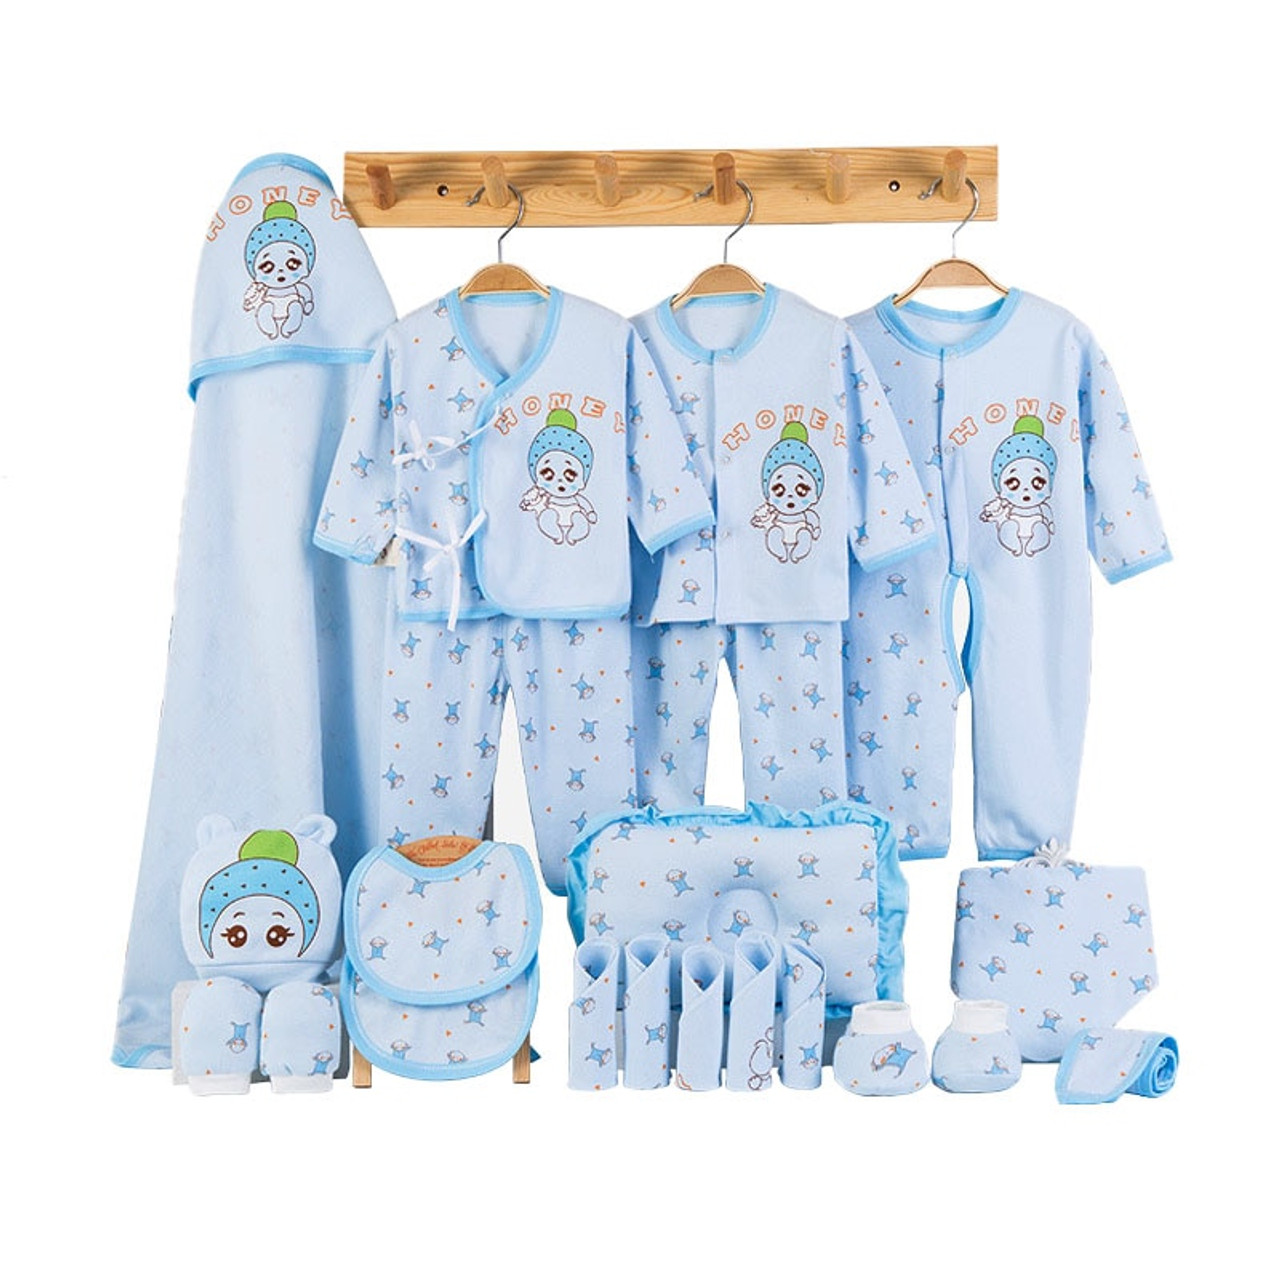 Newborn Baby Clothes Soft Cotton Toddler Baby Boy Girl Clothes Set Cartoon  Infant Clothing New Born Gift Set 5 Colors